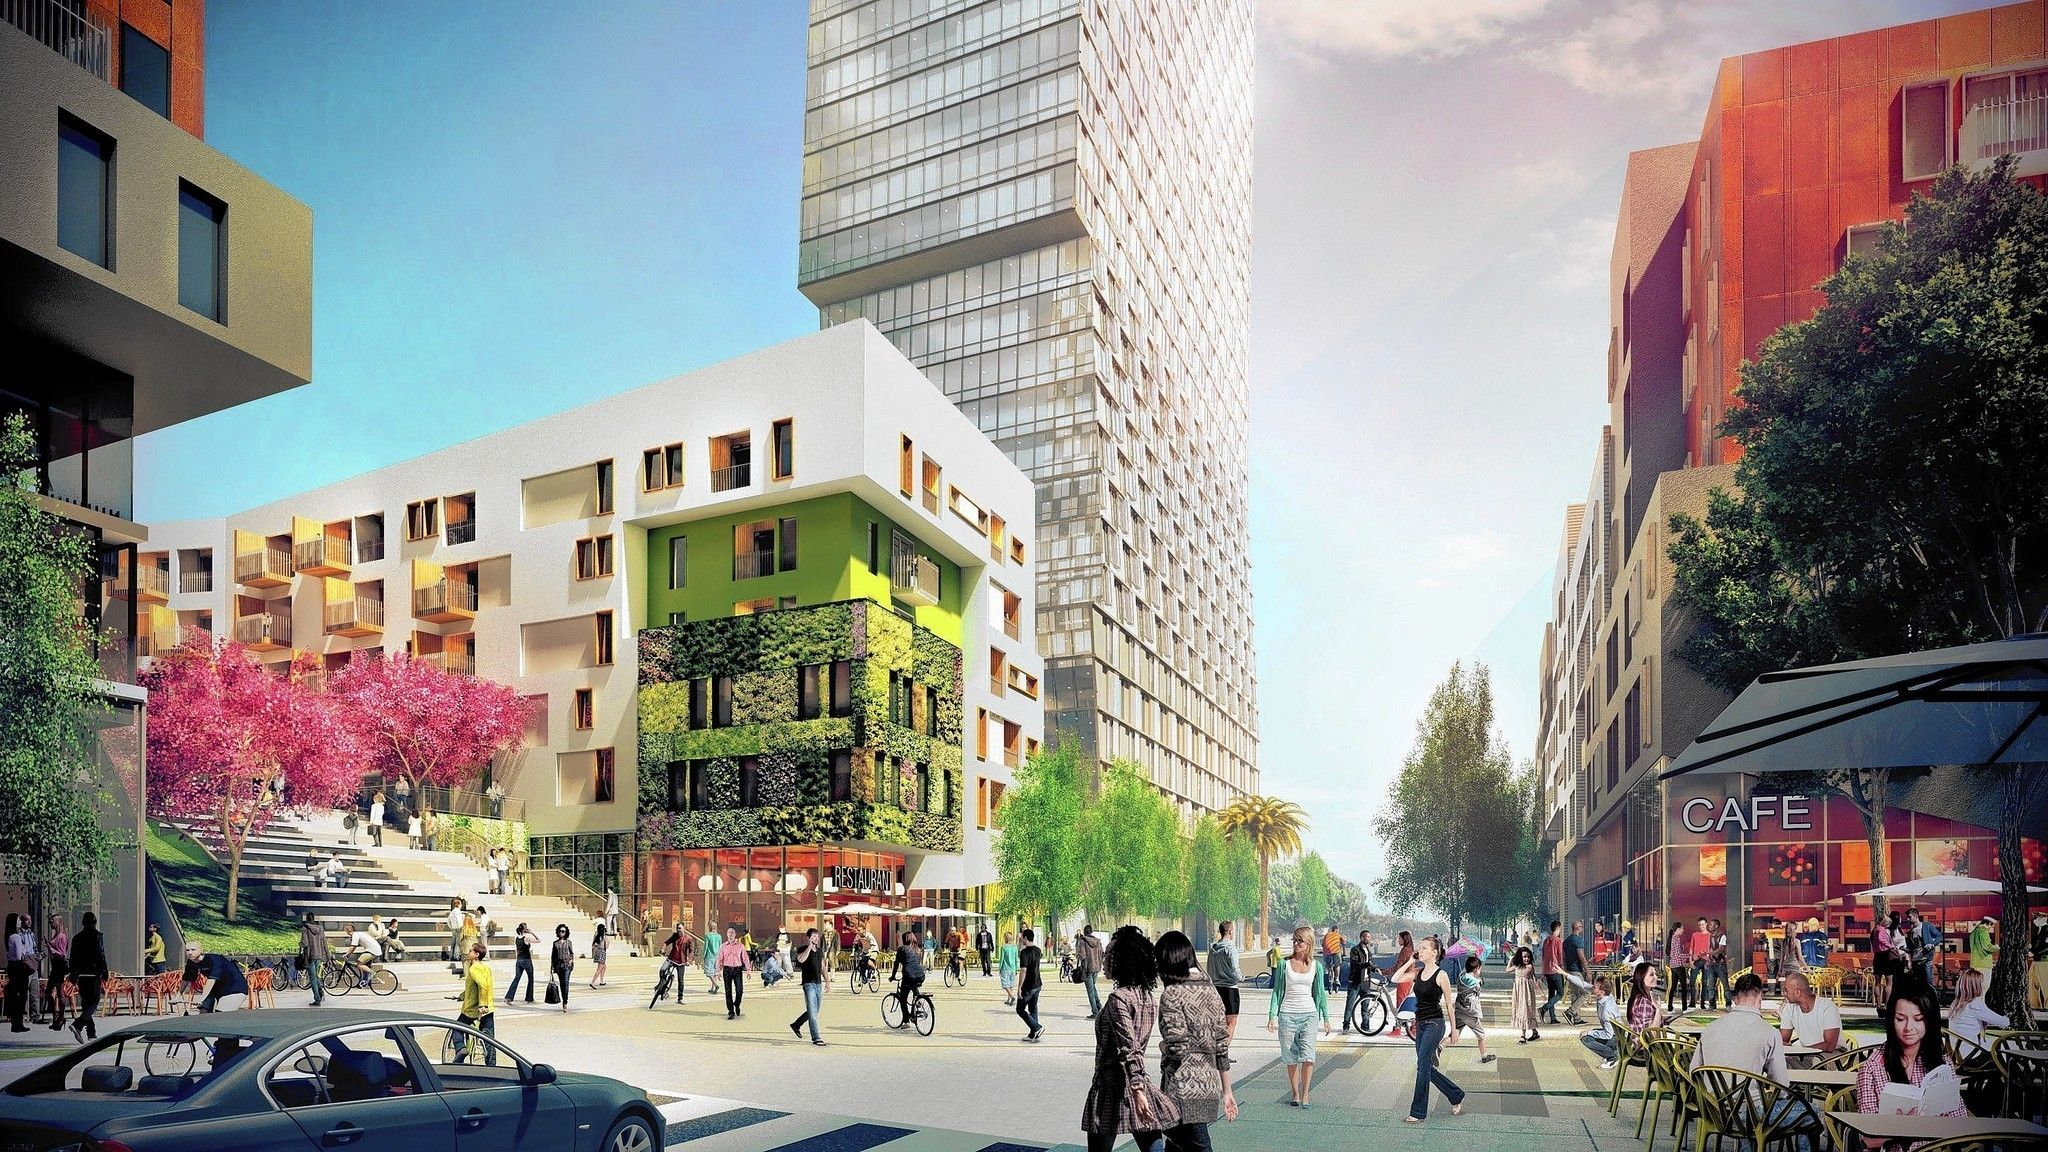 A 1 Billion Residential Hotel And Retail Complex Is Being Planned South Of The 10 Freeway In Downtown Los Angeles As Robust Development Promises To Spread